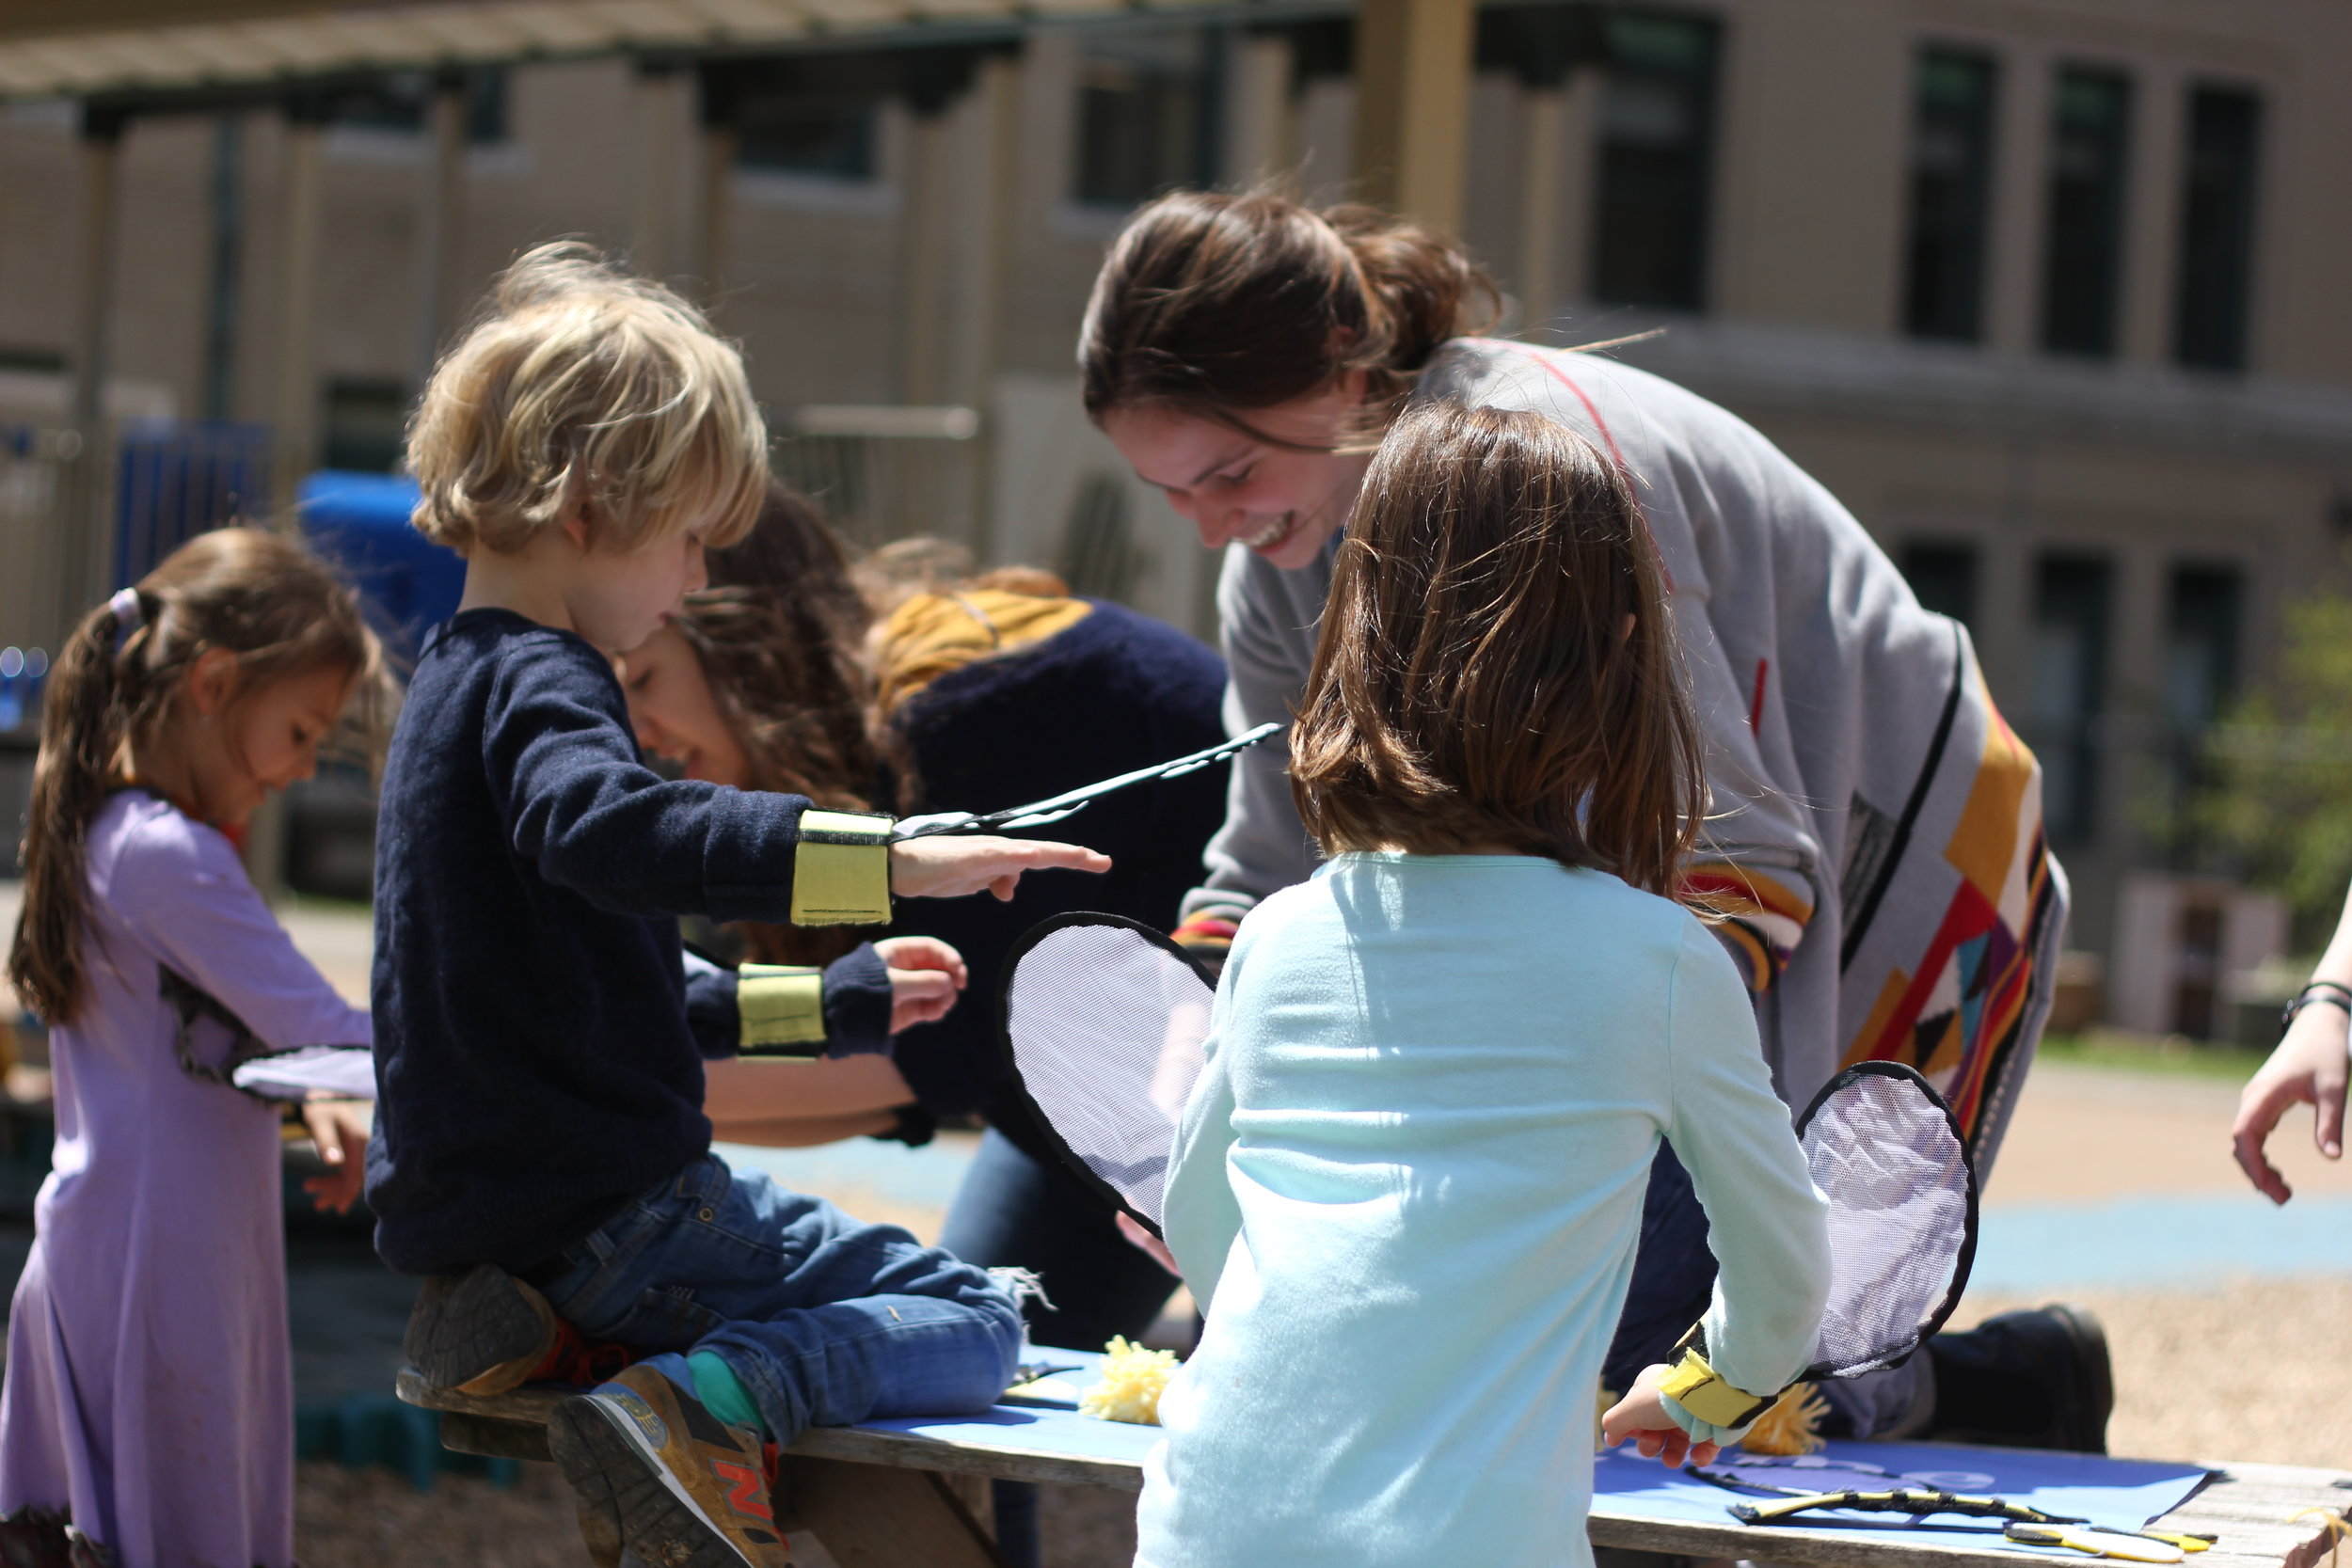 """After giving a brief introduction about bees and pollination, the kids dressed up in the wearable bee wings in preparation for collecting and distributing """"pollen"""" to the flowers."""